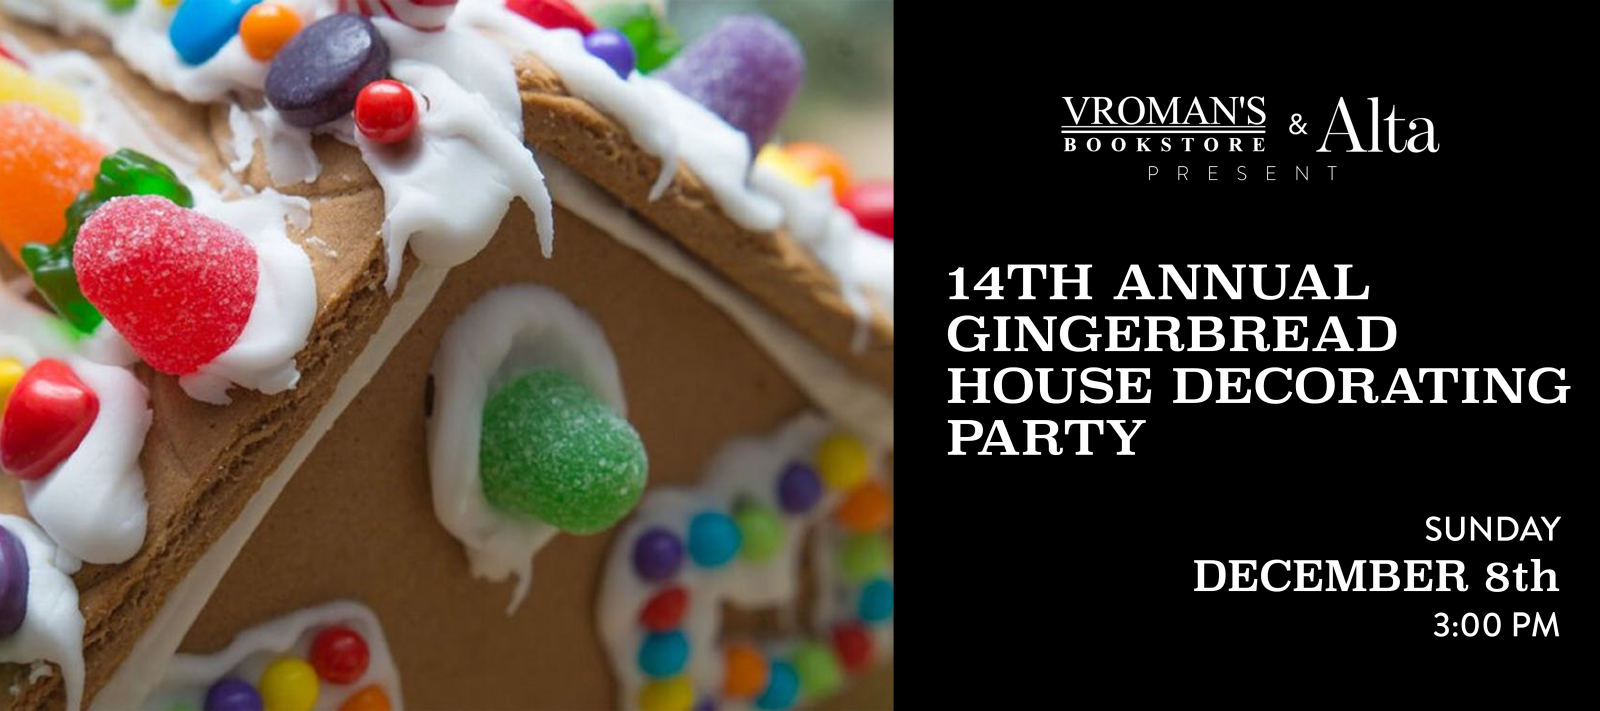 14th Annual Gingerbread House Decorating Party Sunday, December 8th at 3pm